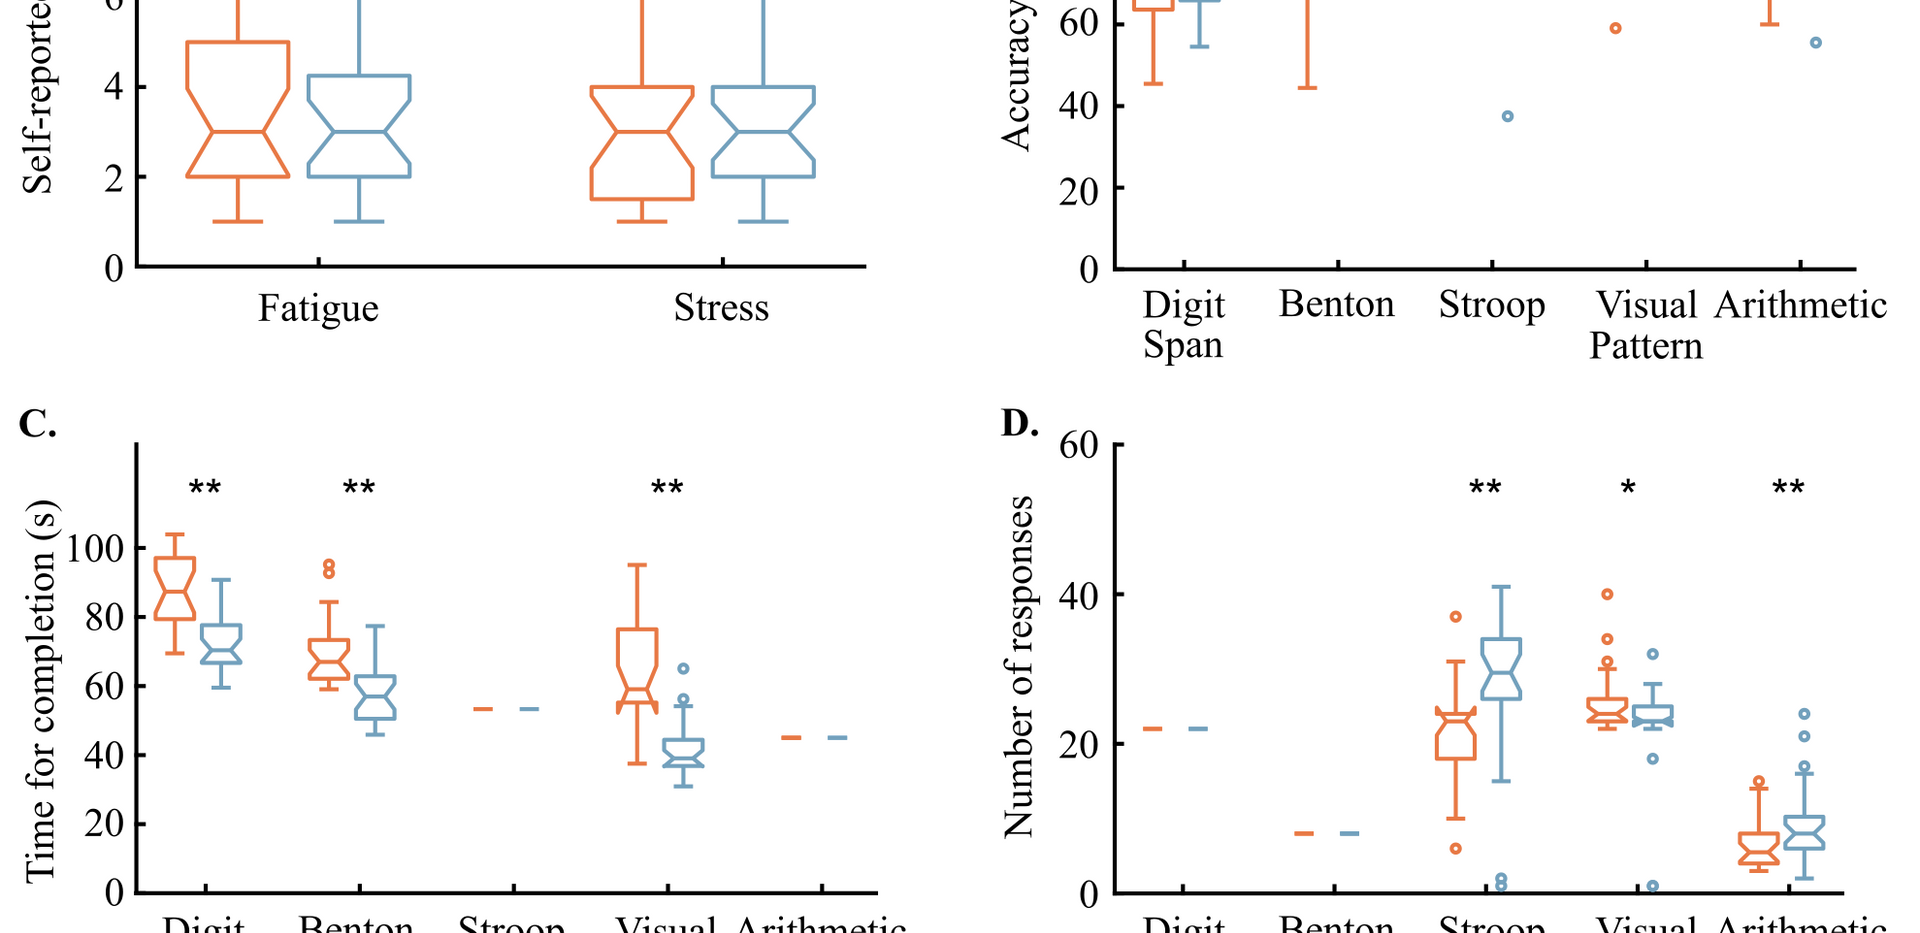 Cognitive test performance in the physical classroom environment vs. the identical virtual classroom. The color bars indicate the median scores in each environment, with the first and third quartiles shown as error bars. A. Self-reported fatigue and stress levels after completing the tests, B. the ratio of correct responses to total number of responses given by the participants, C. the time required to complete each test, and D. the total number of responses given by the participants in each tests.